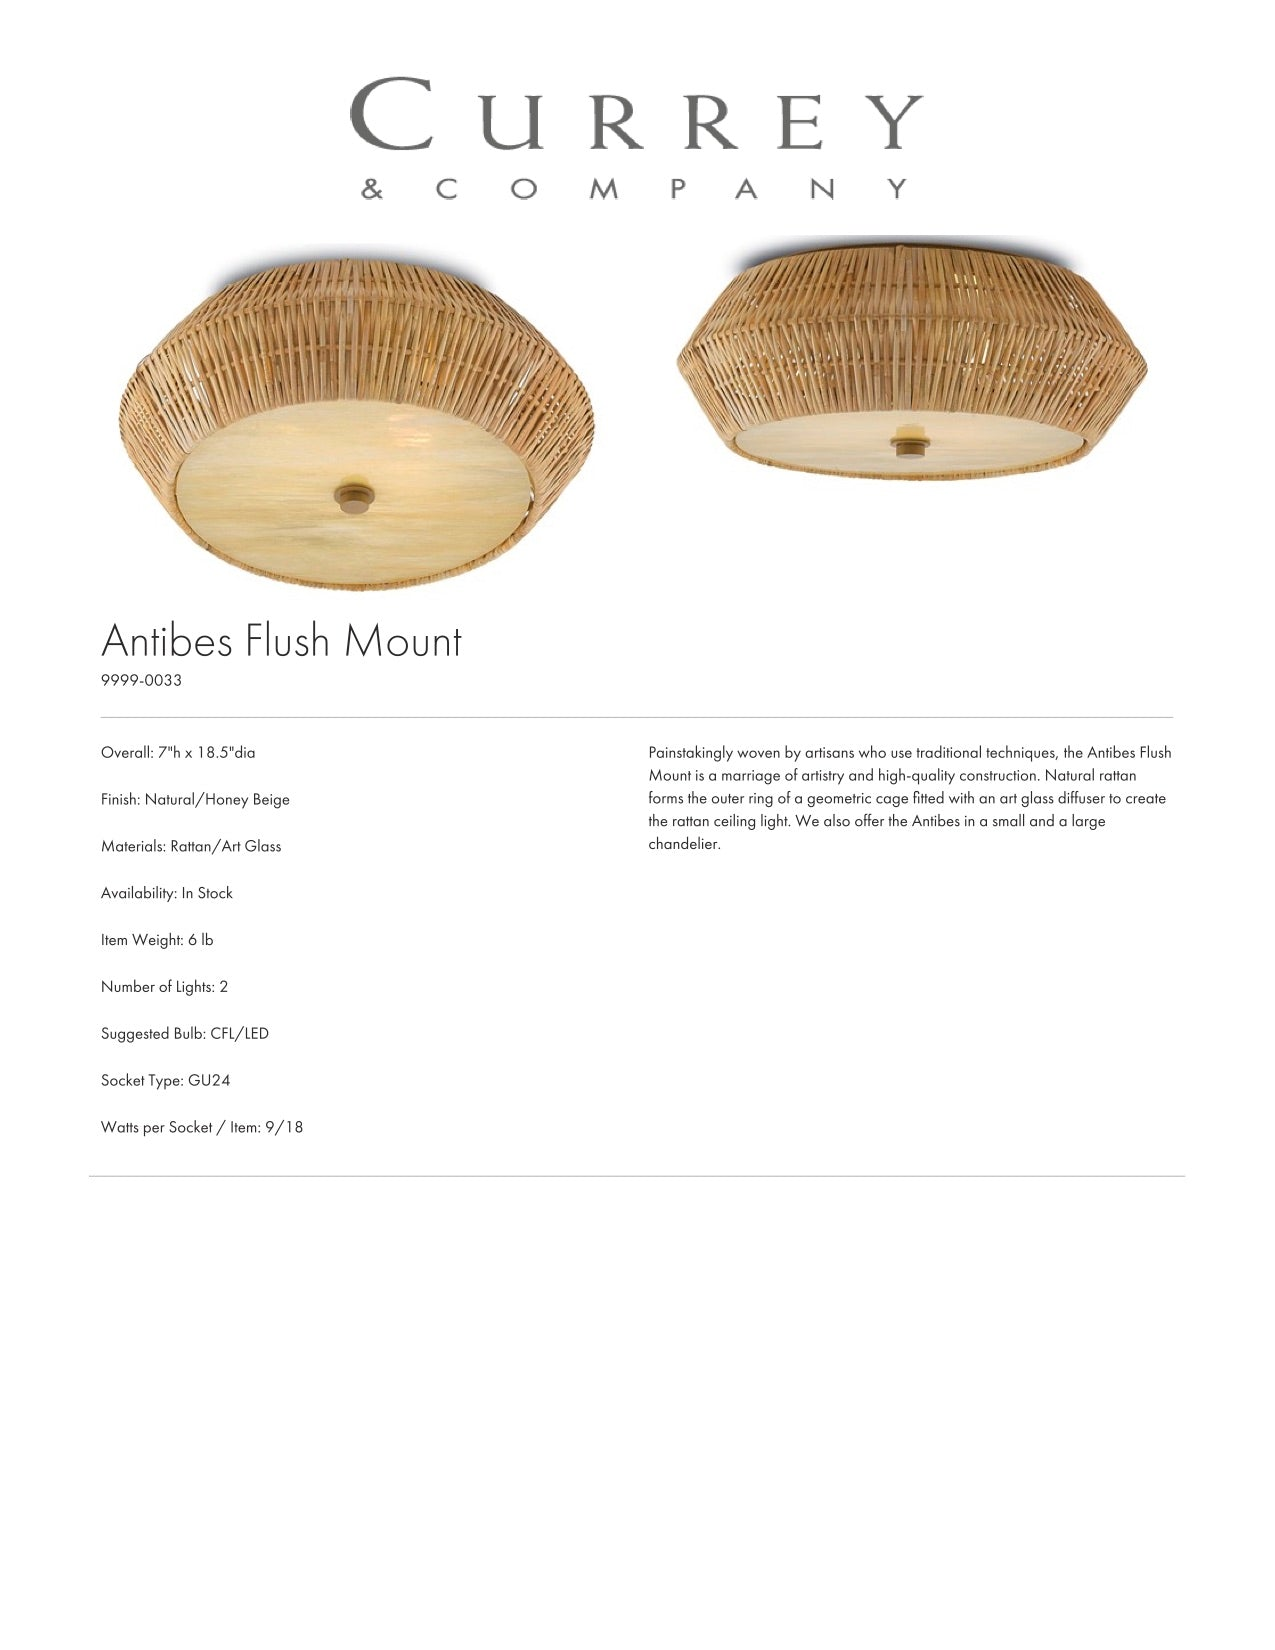 Currey & Company Antibes Flush Mount Tearsheet